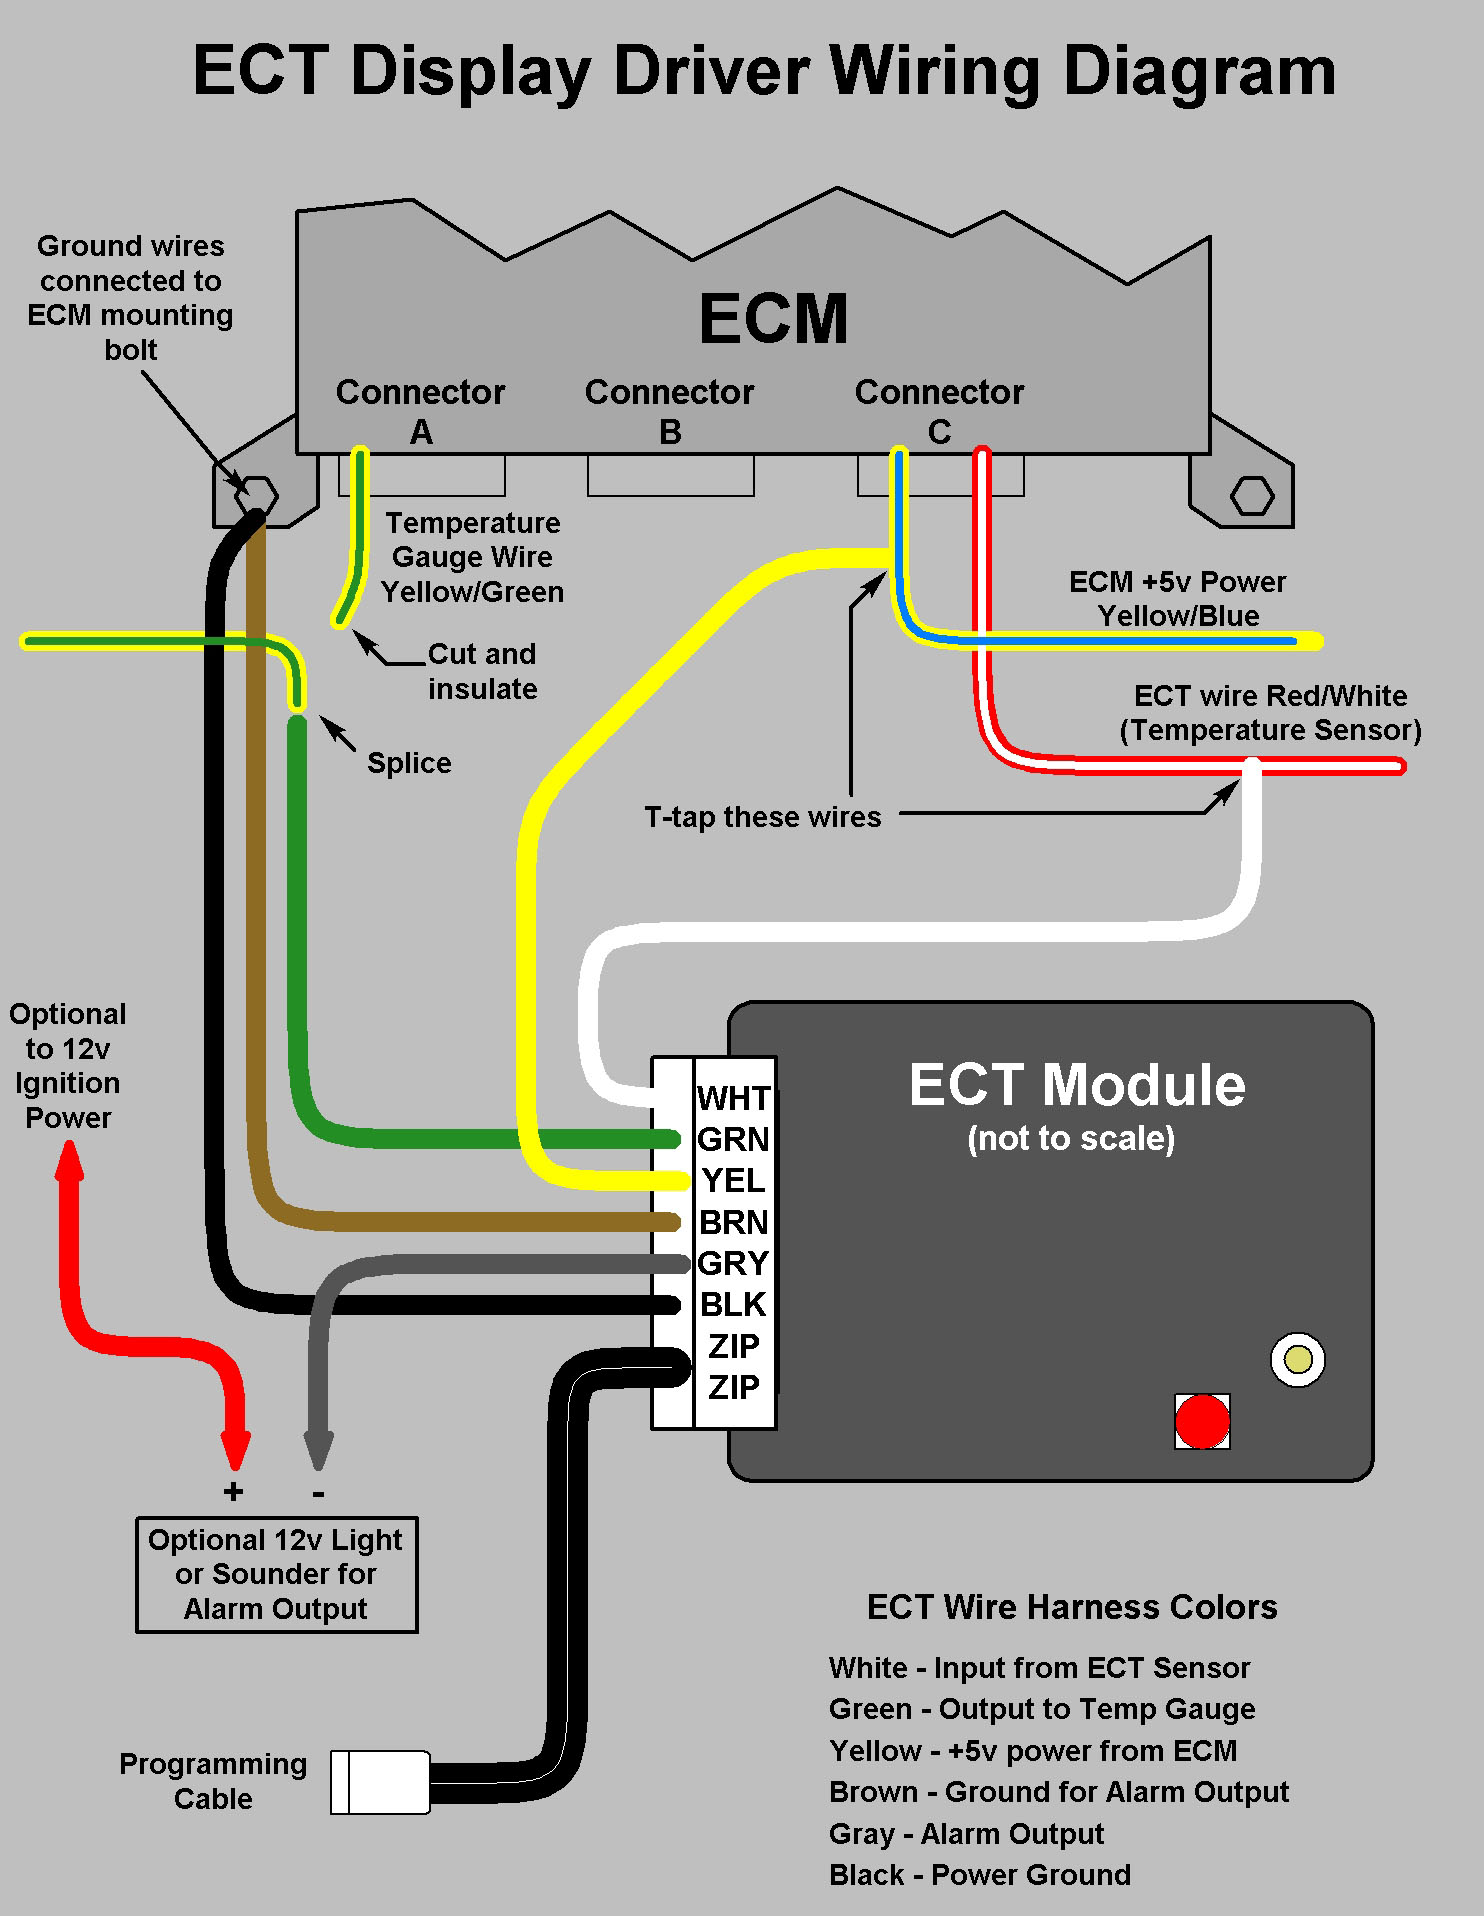 ECT wiring diagram ems wiring diagram management system \u2022 wiring diagrams j squared co  at gsmportal.co